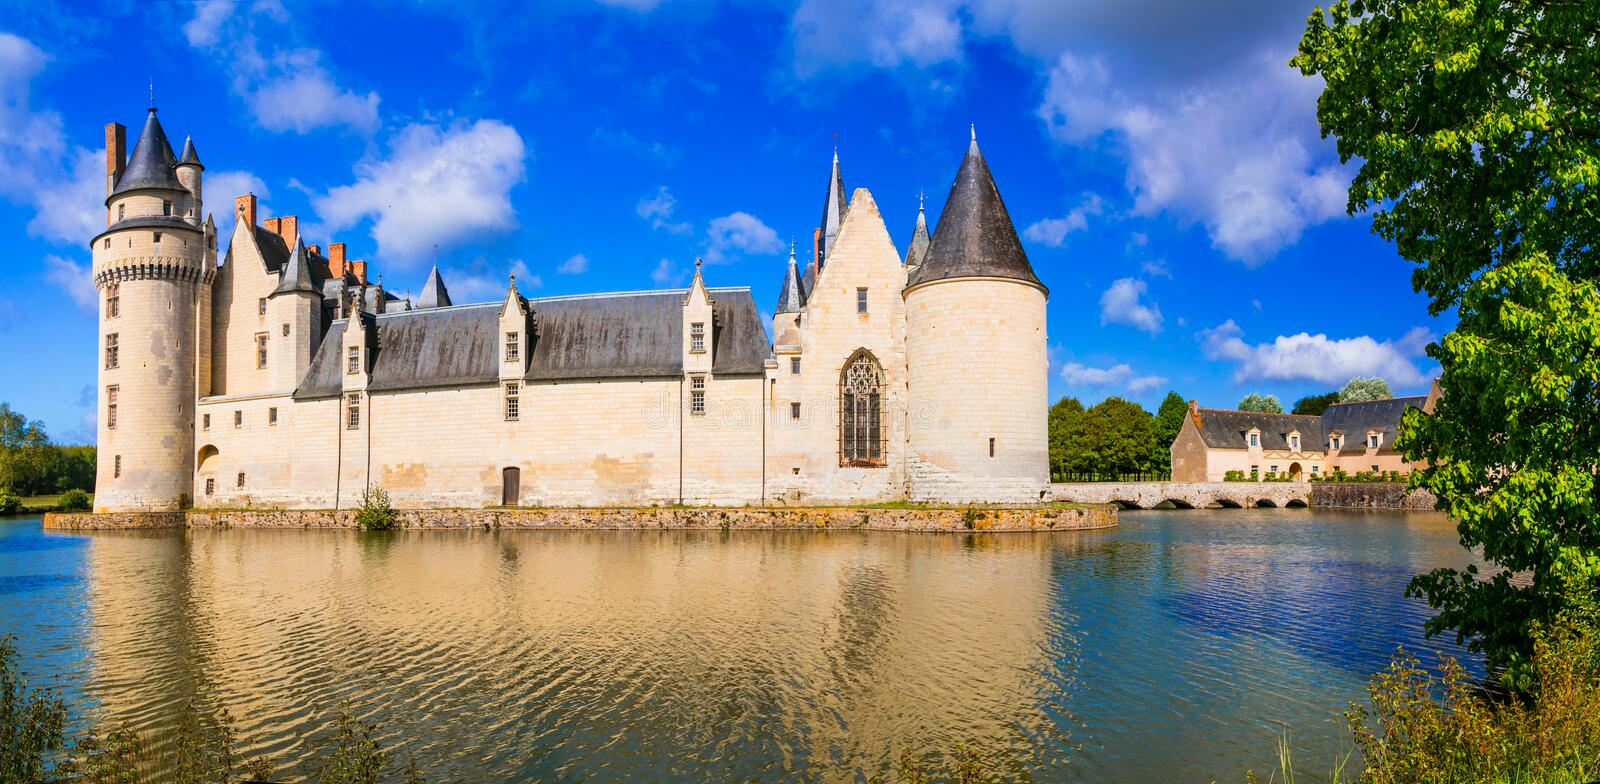 Majestic medieval castles in Loire valley - Le Plessis Bourre. F. Beautiful Plessis Bourre castle,panoramic view with river,Loire valley,France royalty free stock photography